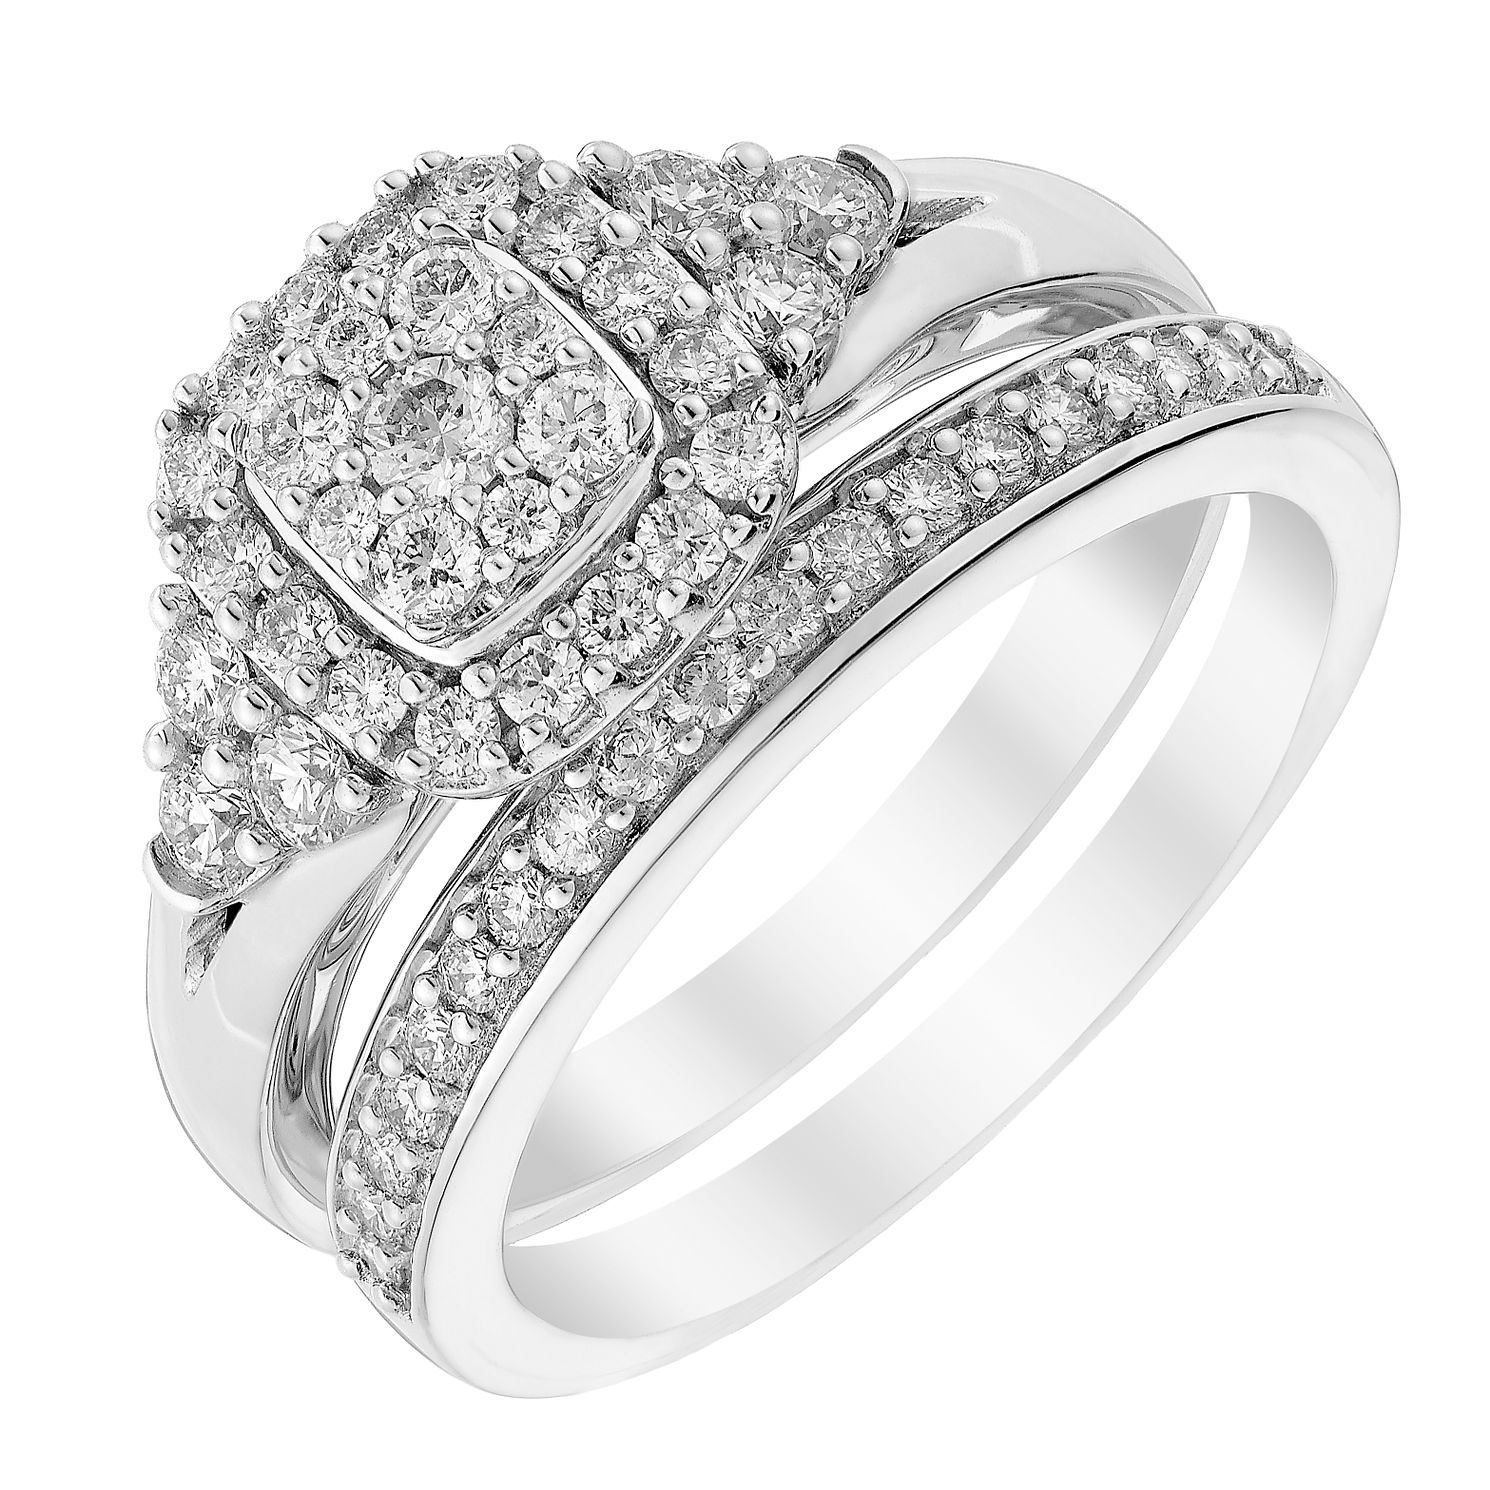 Perfect Fit 18ct White Gold 0.66ct Total Diamond Bridal Set - Product number 3000362